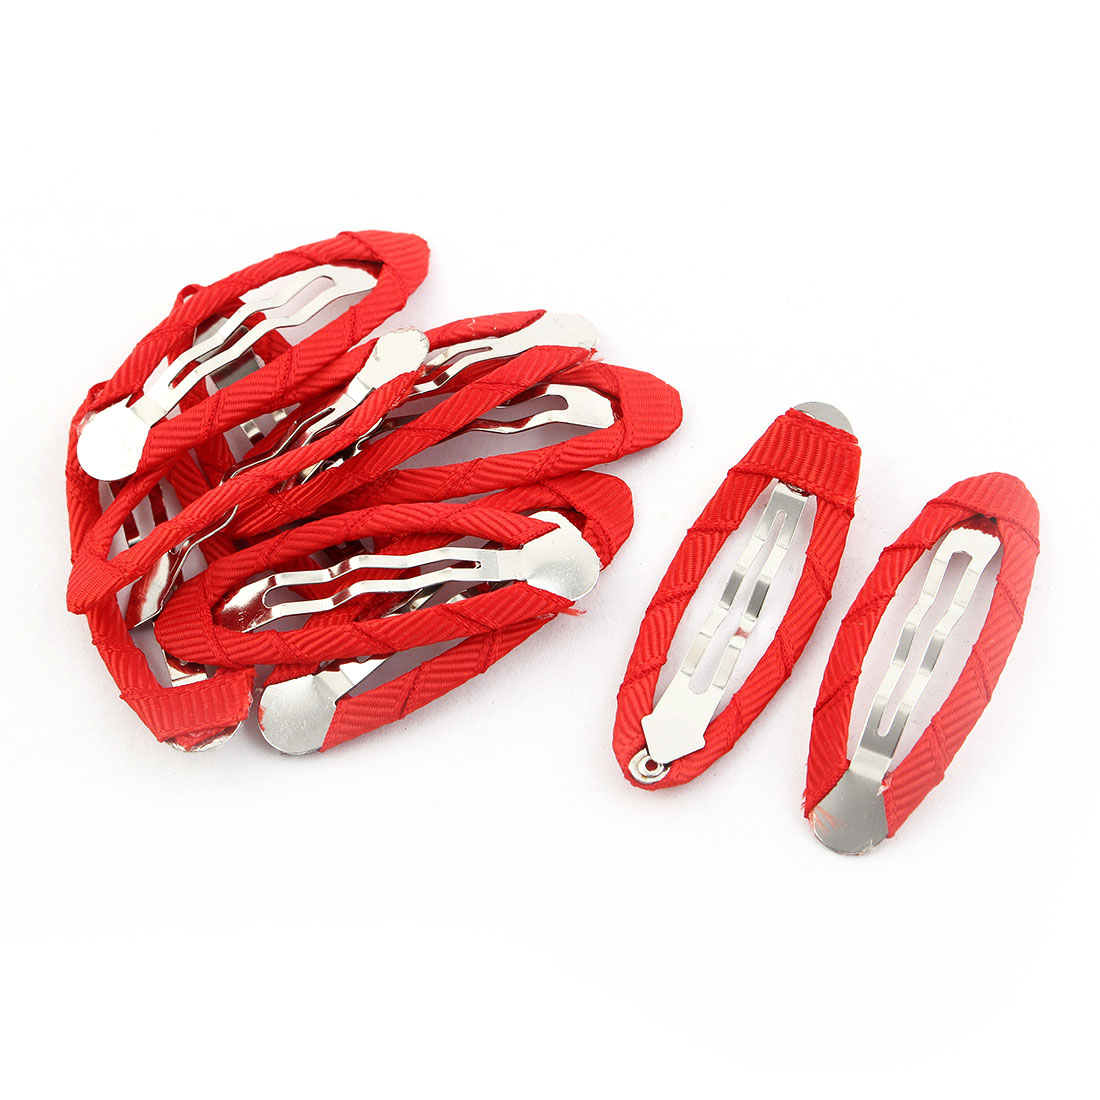 Girls Metal Synthetic Fabric Wrapped DIY Snap Hair Clips Barrettes Red 10pcs